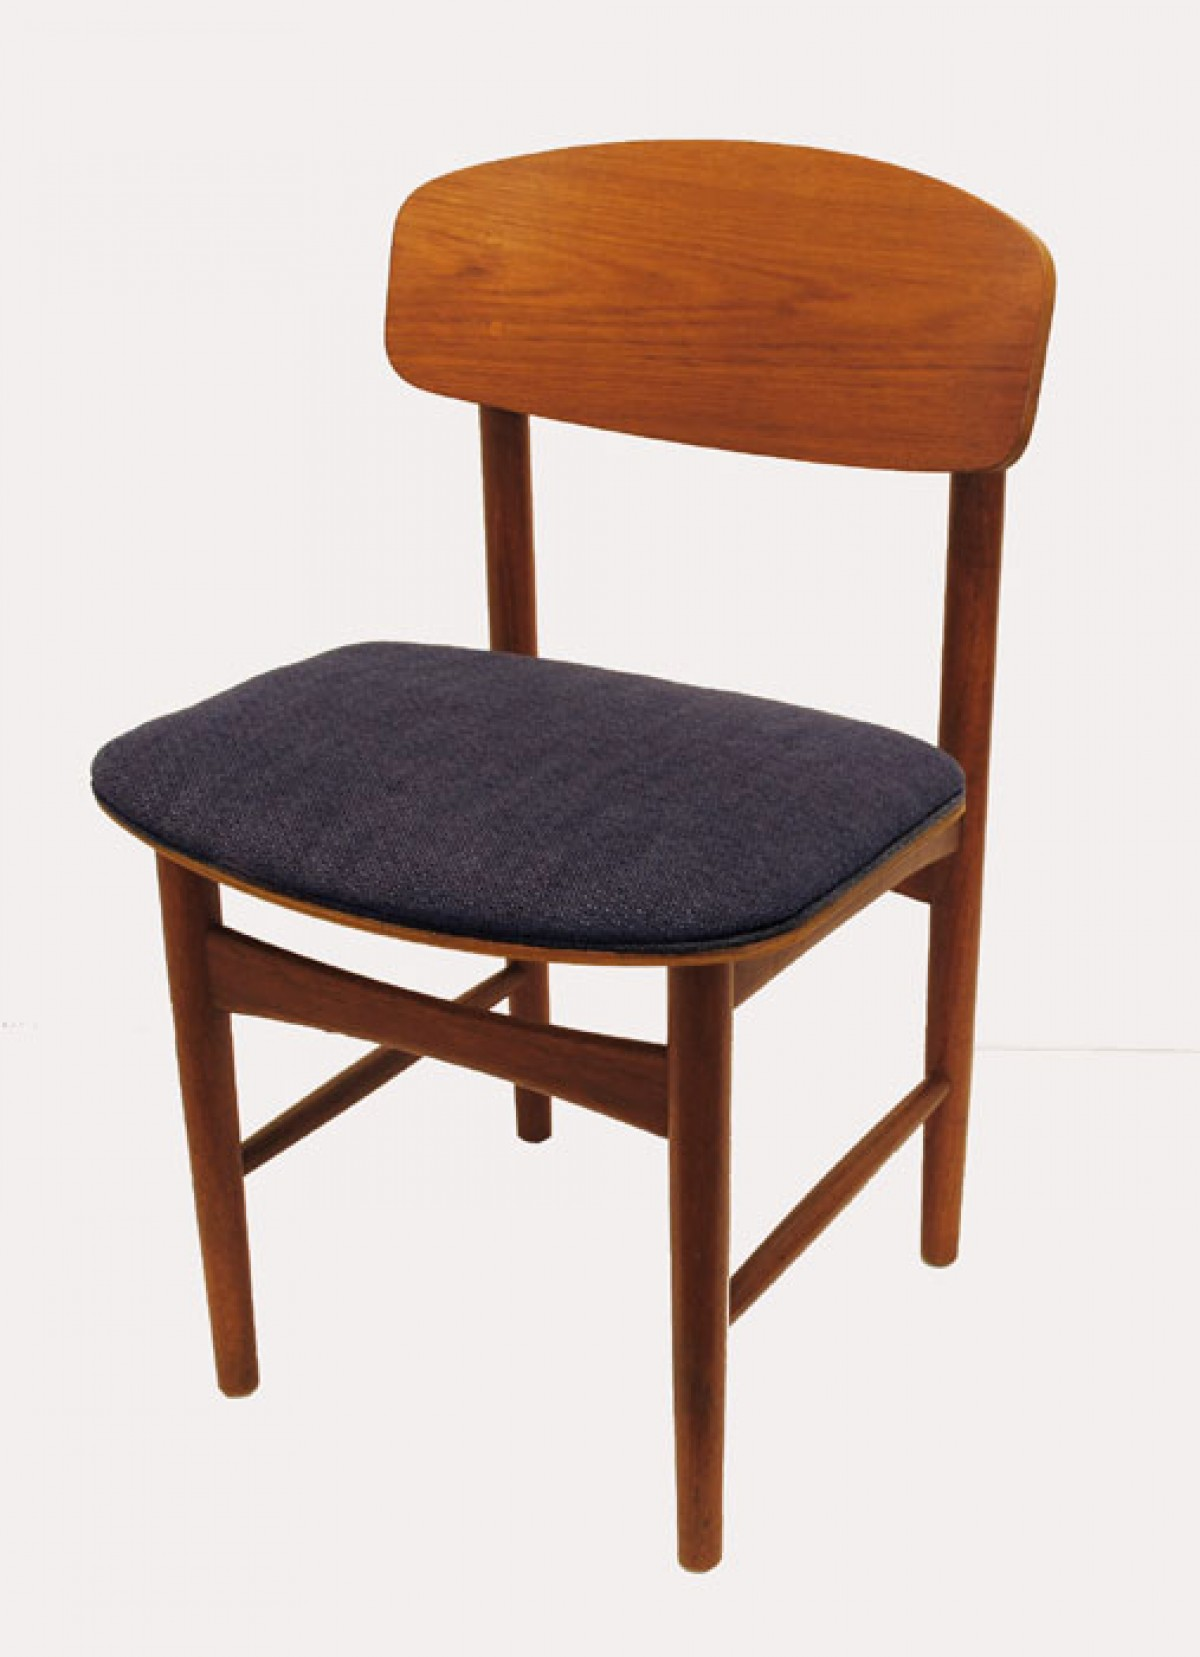 1950 60s Danish Teak Dining Chairs Borge Mogensen